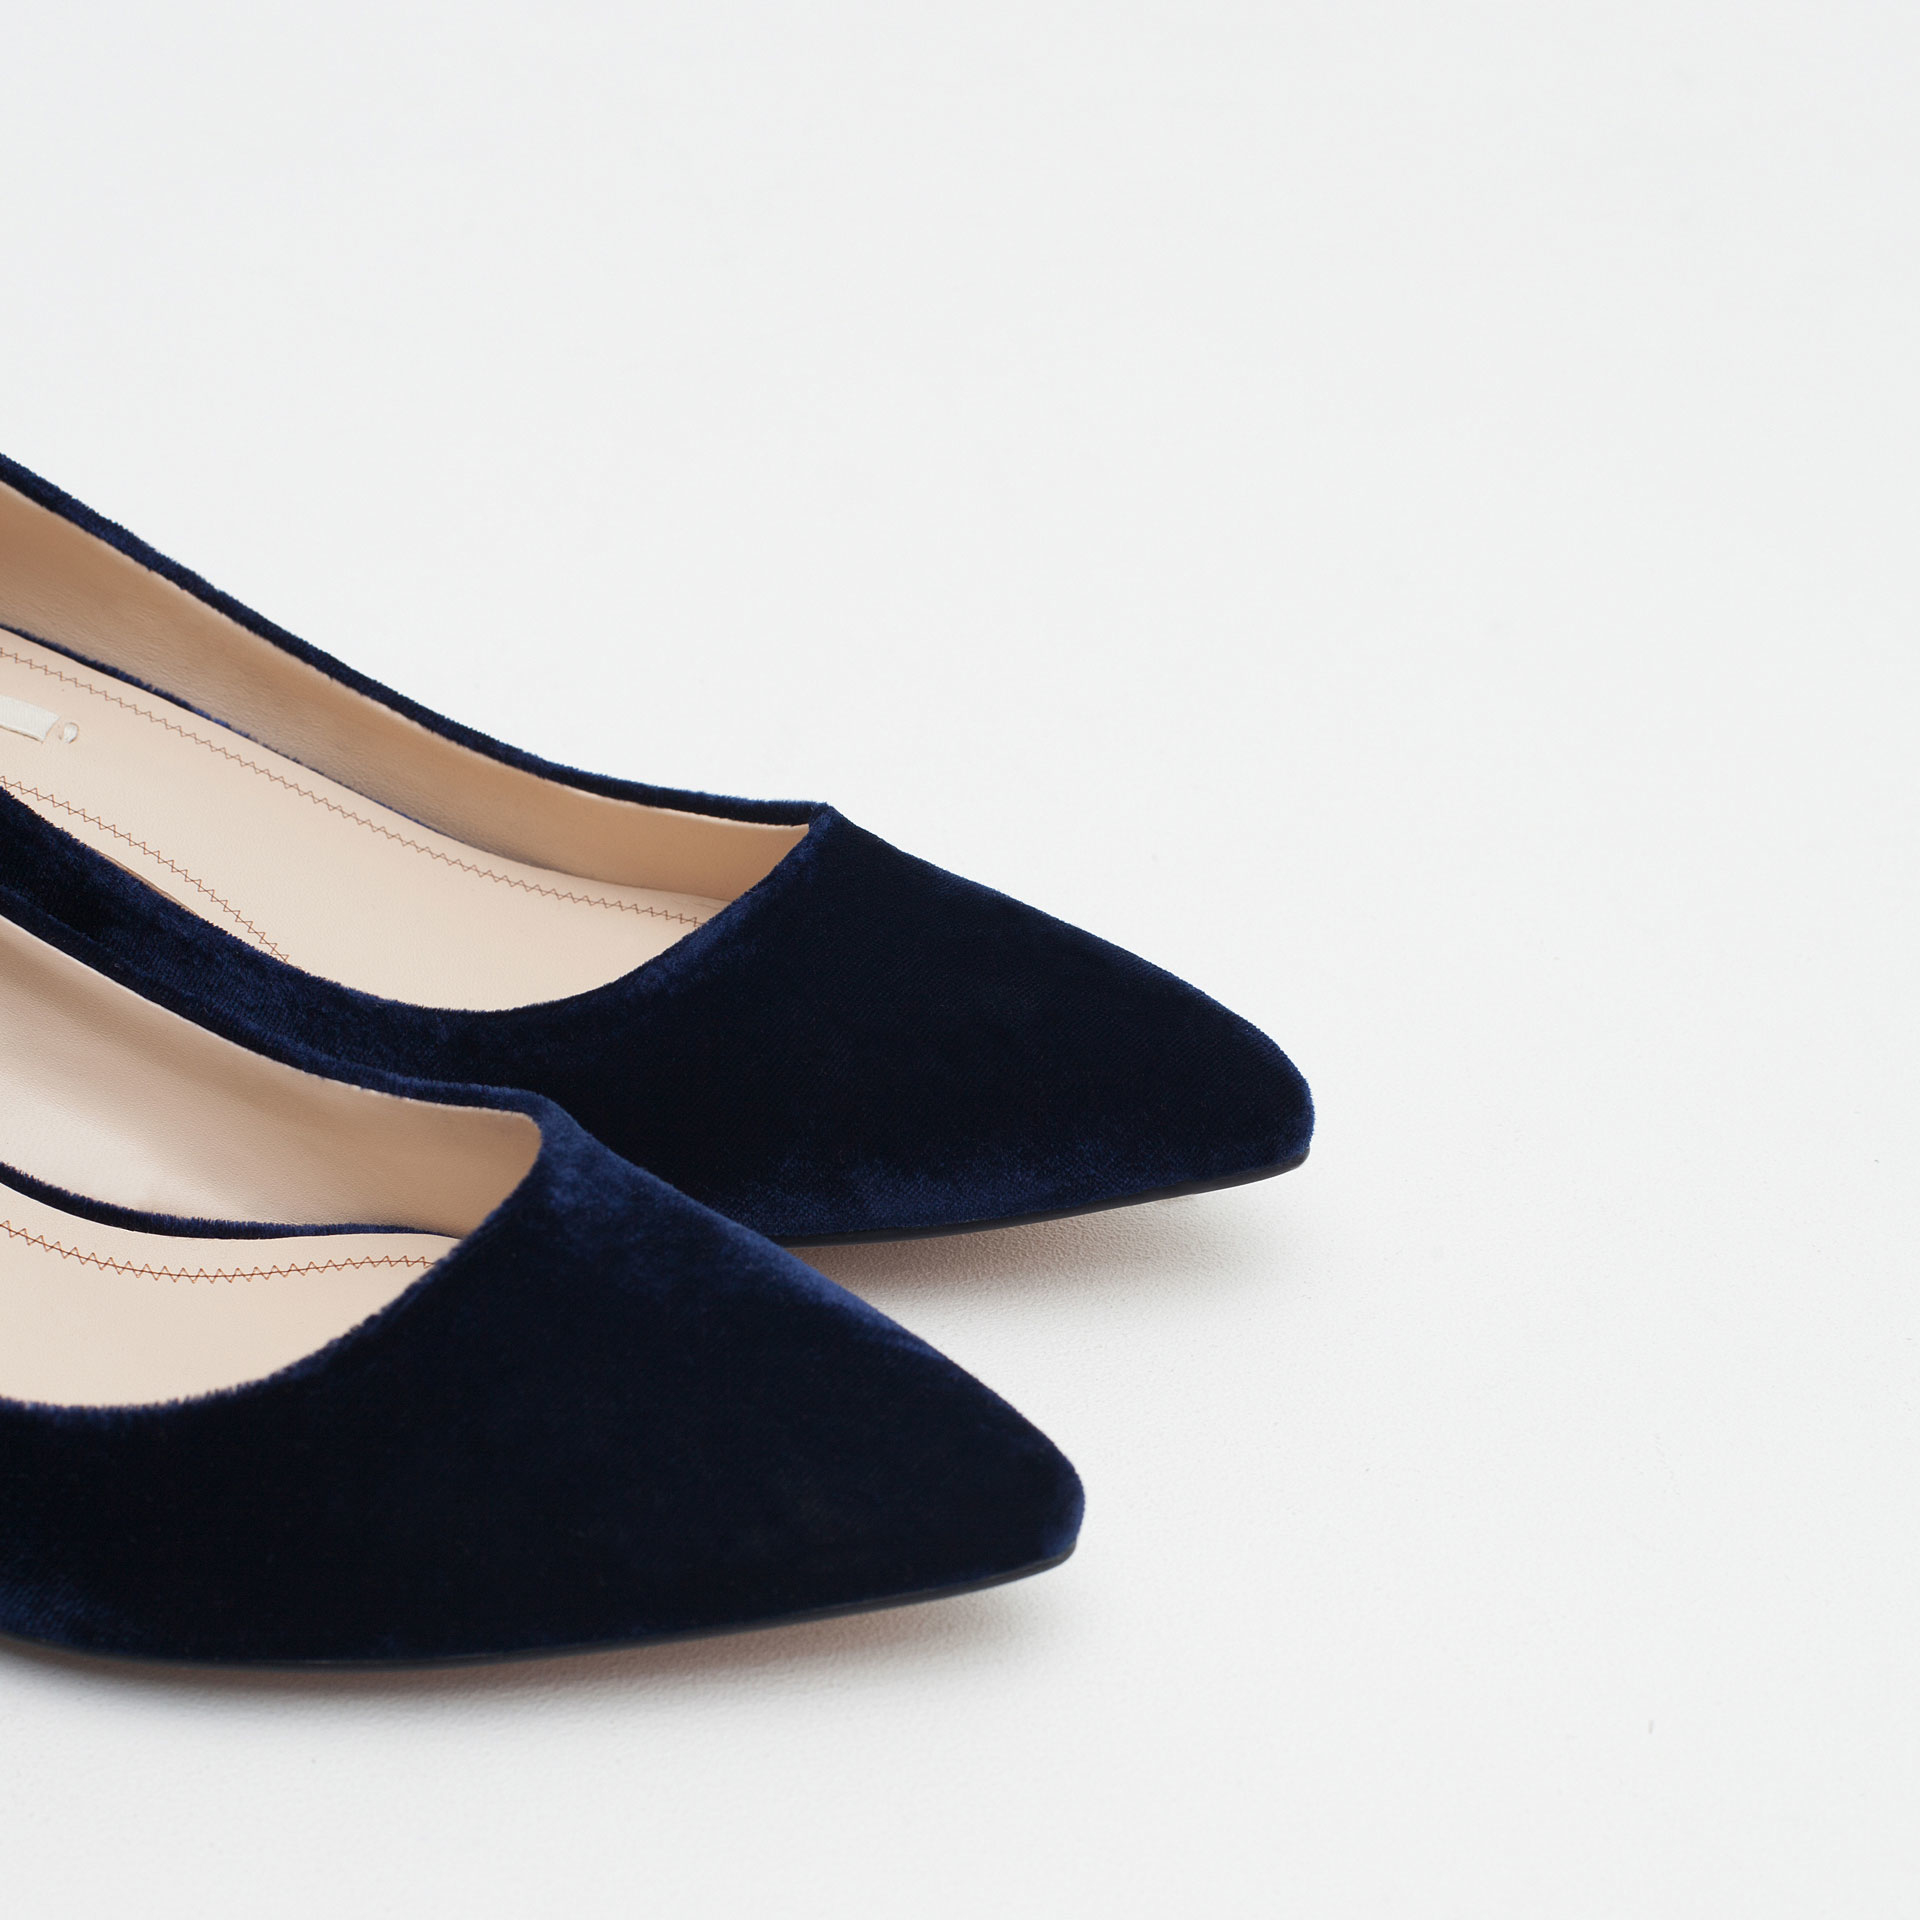 Zara Combined Leather Flat Shoes